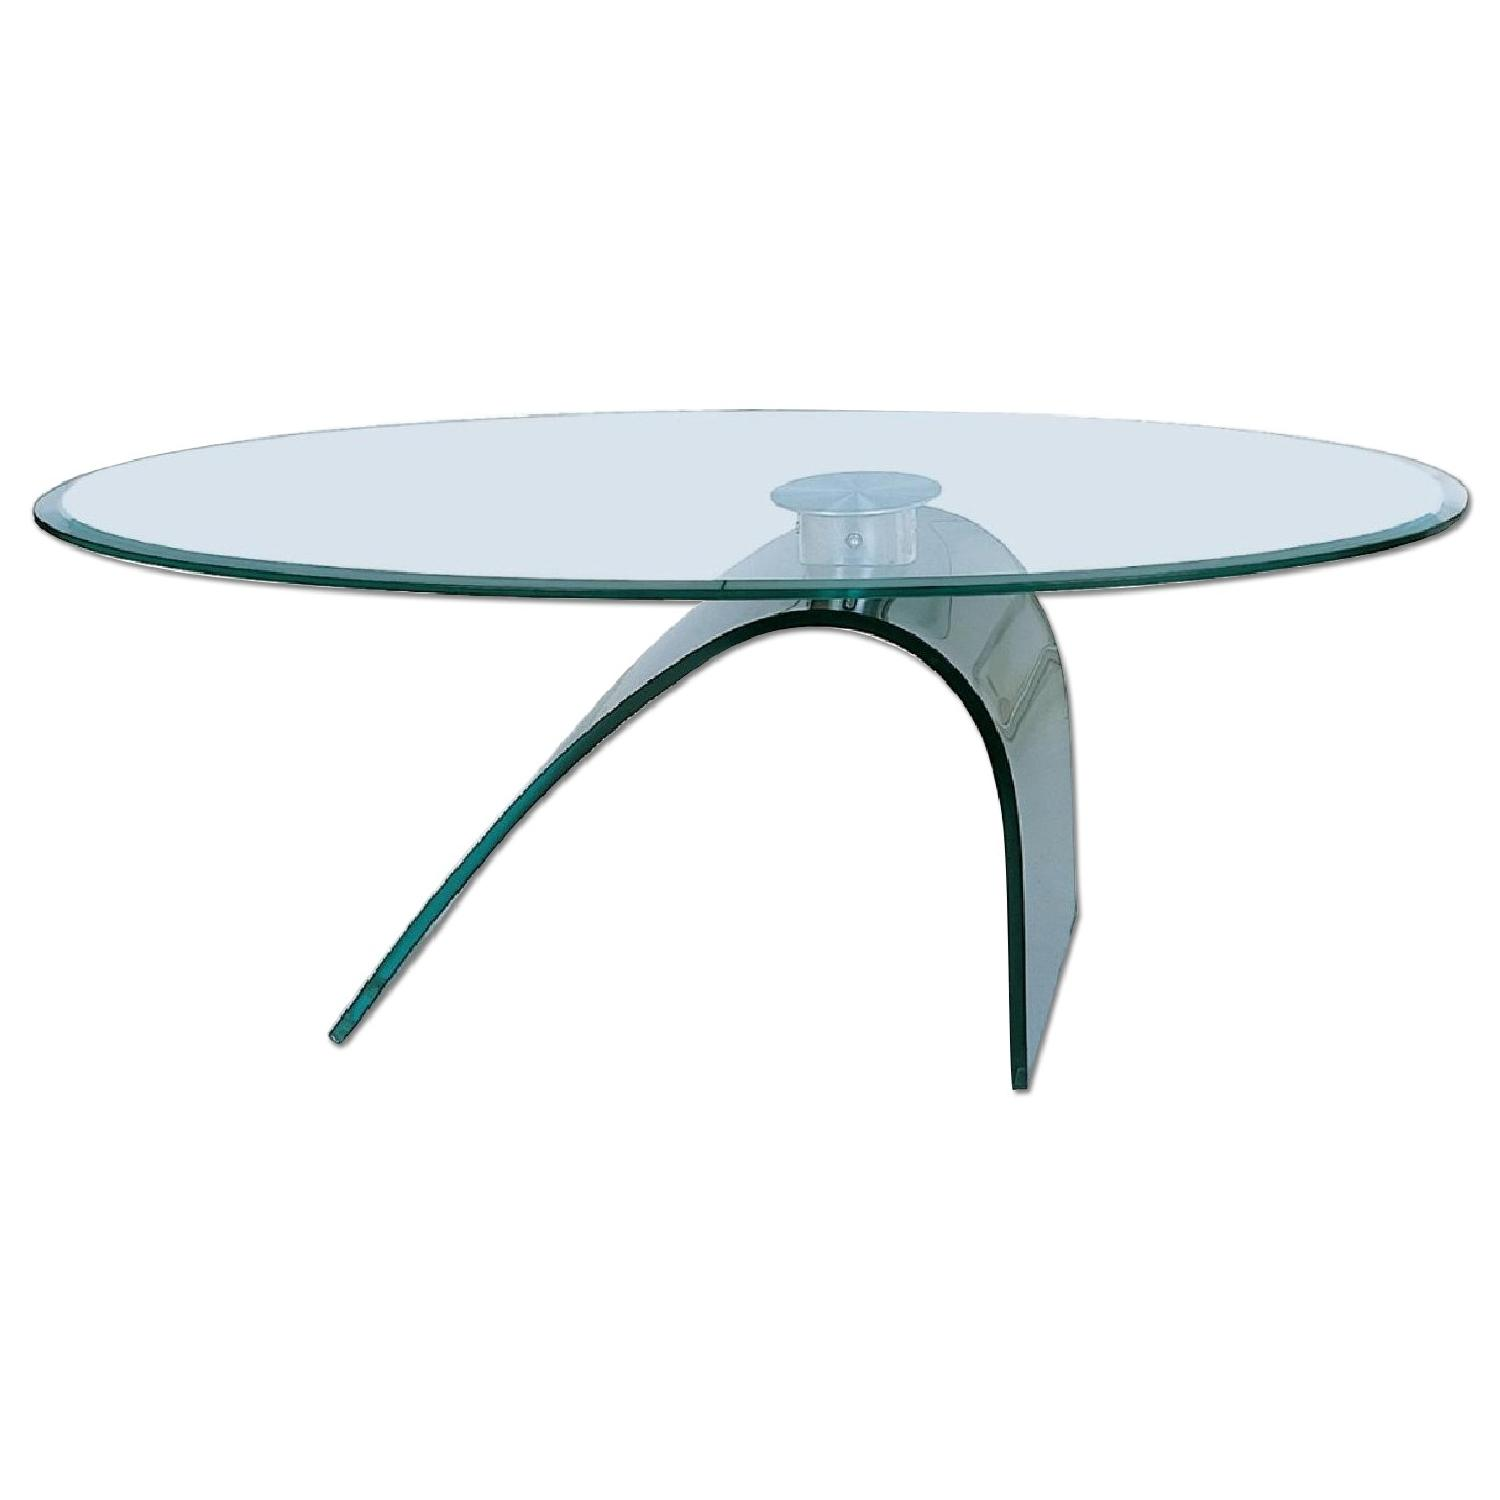 Modern Coffee Table w/ Thick Oval Tempered Glass Top & C Sha